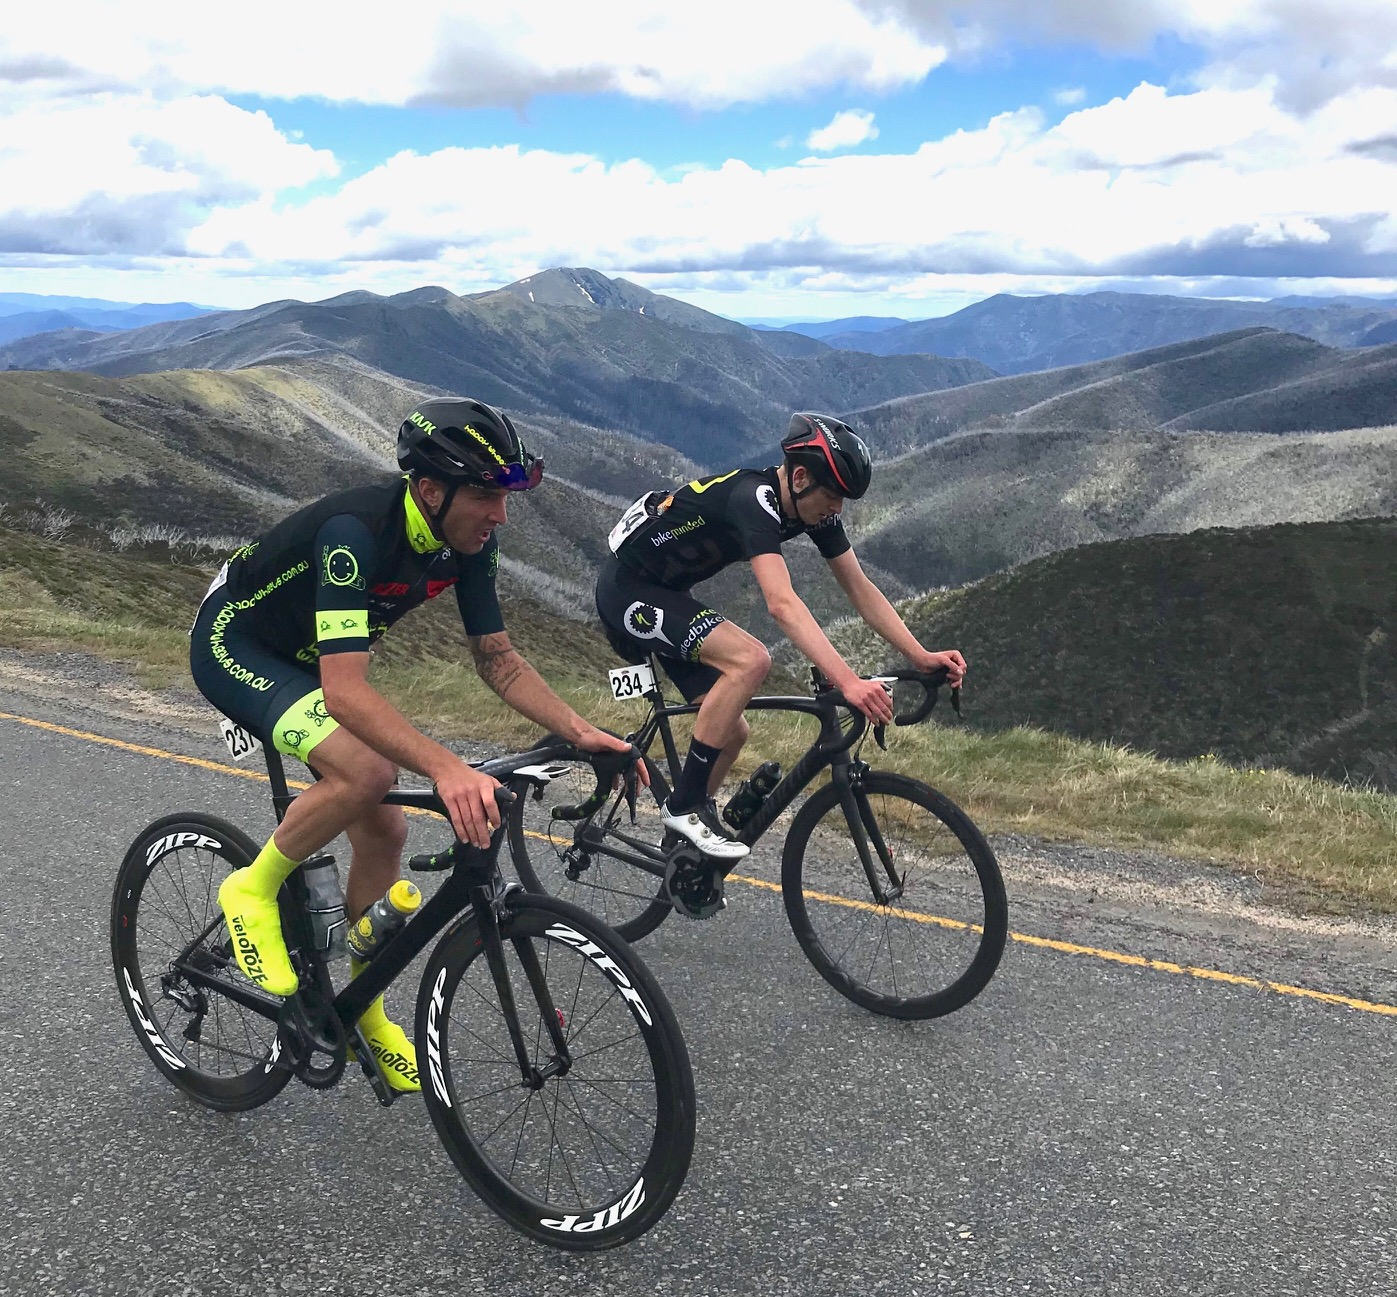 Tour of Bright 18 @ 2 Dec - Declan Jones with a glimpse of the Mount Hotham summit